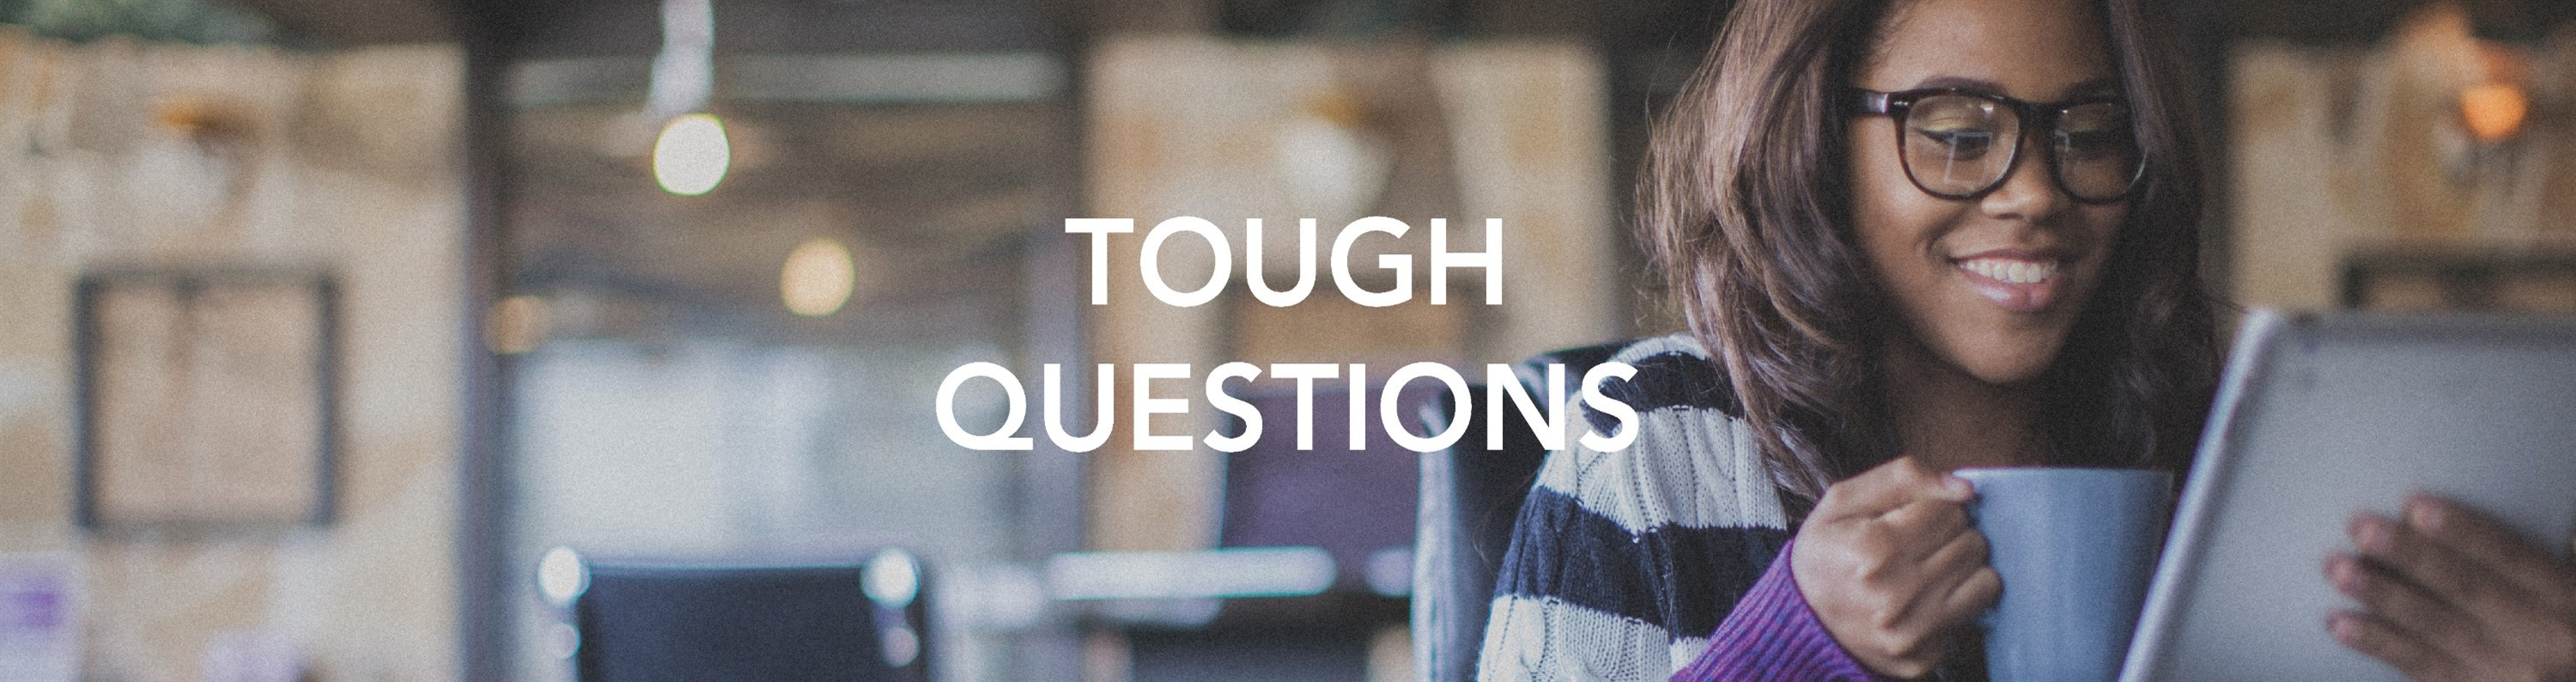 banner-tough-questions